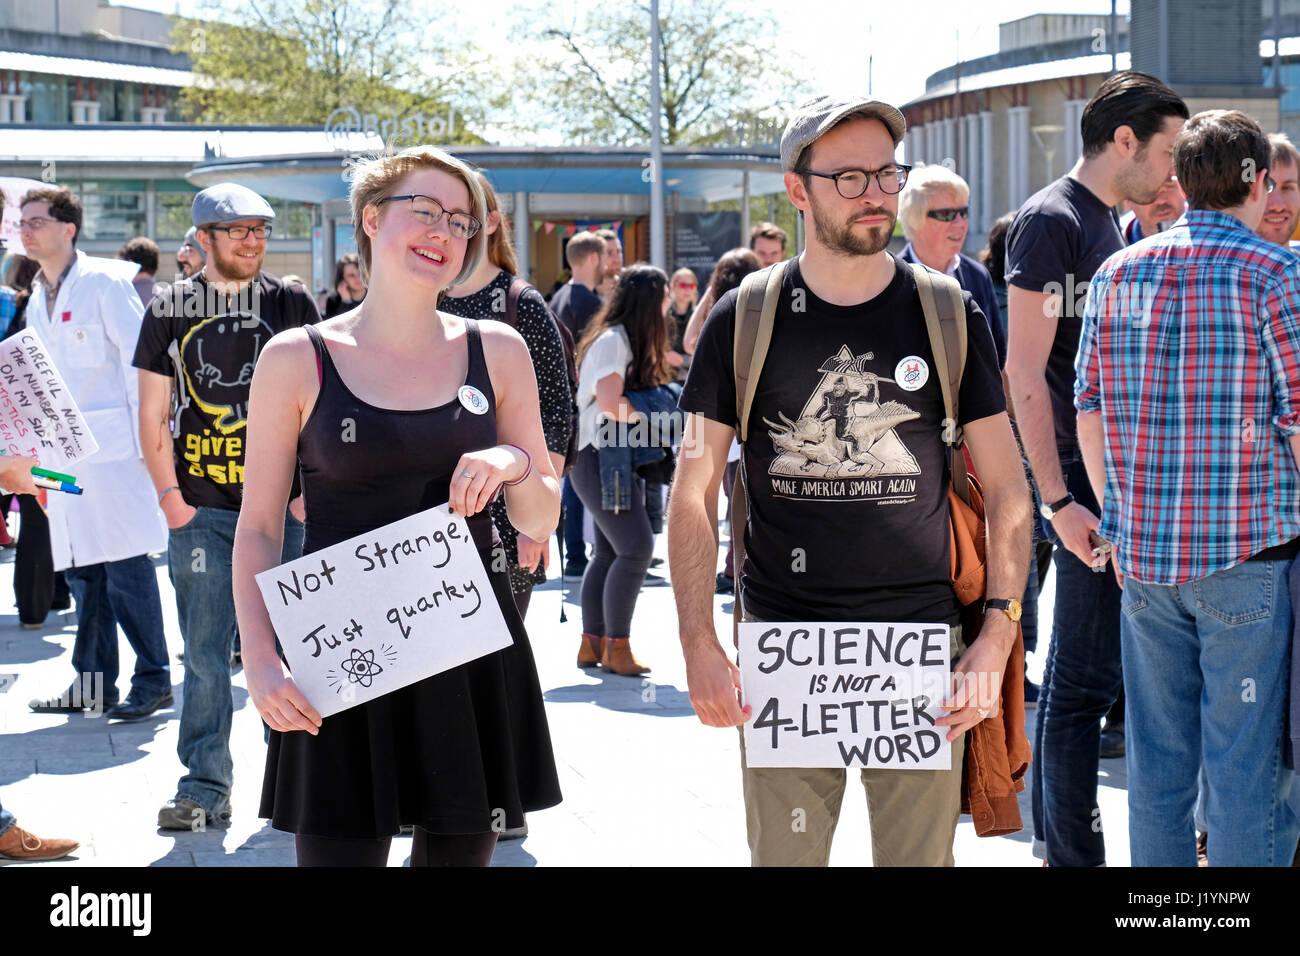 Bristol, UK. 22nd April, 2017. Protestors take part in the March for Science. The March for Science is intended Stock Photo